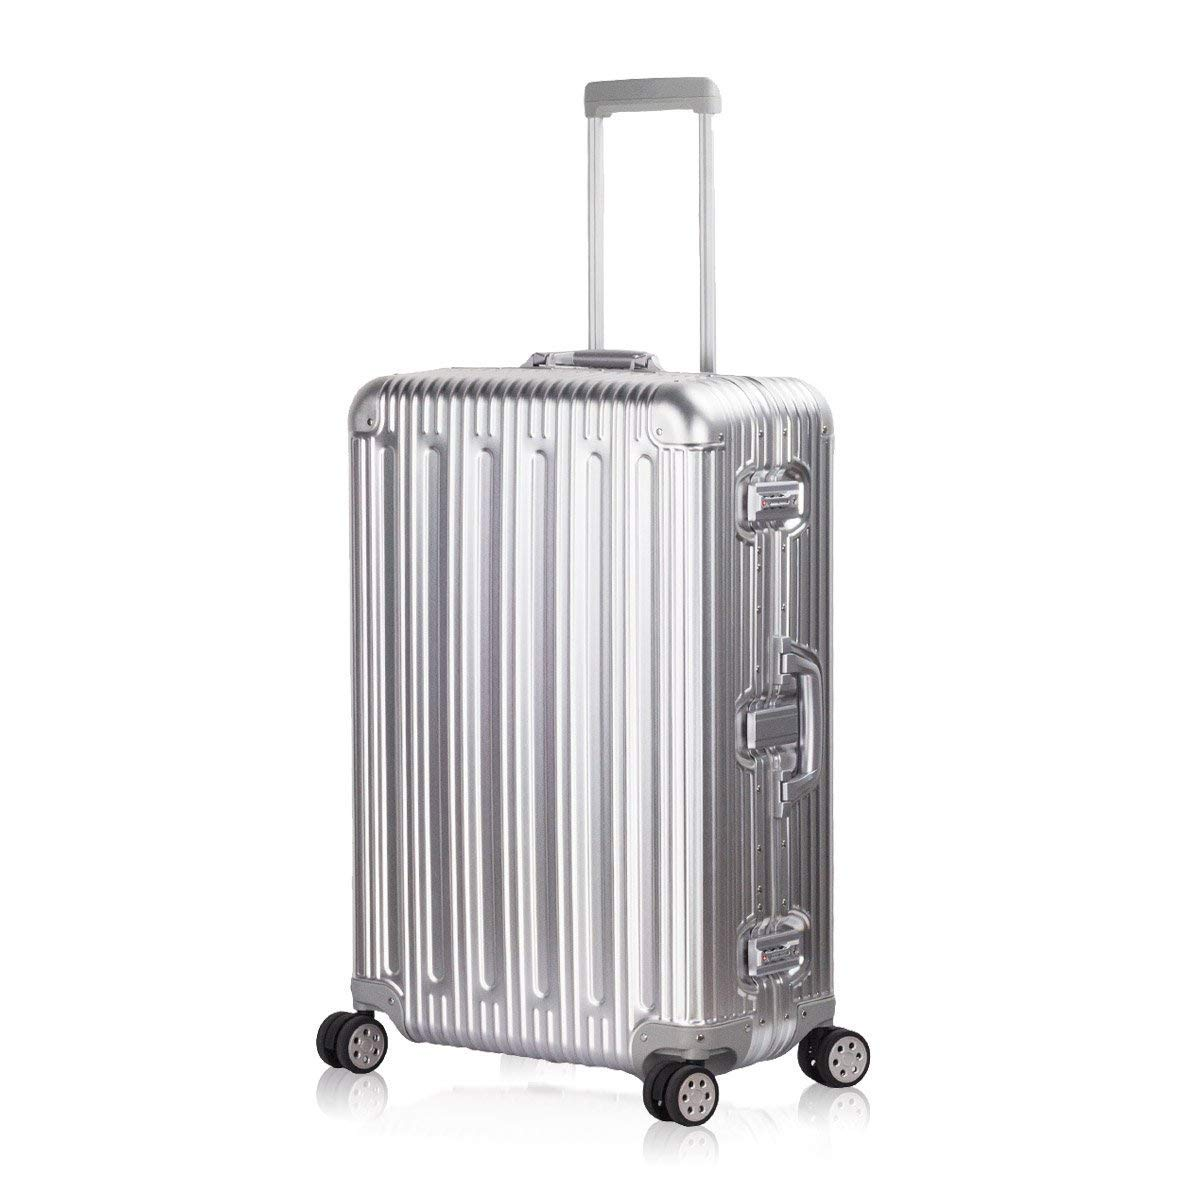 Travelking Aluminum Luggage Carry On Spinner Hard Shell Suitcase Lightweight Metal Suitcases (Silver, 28 Inch)